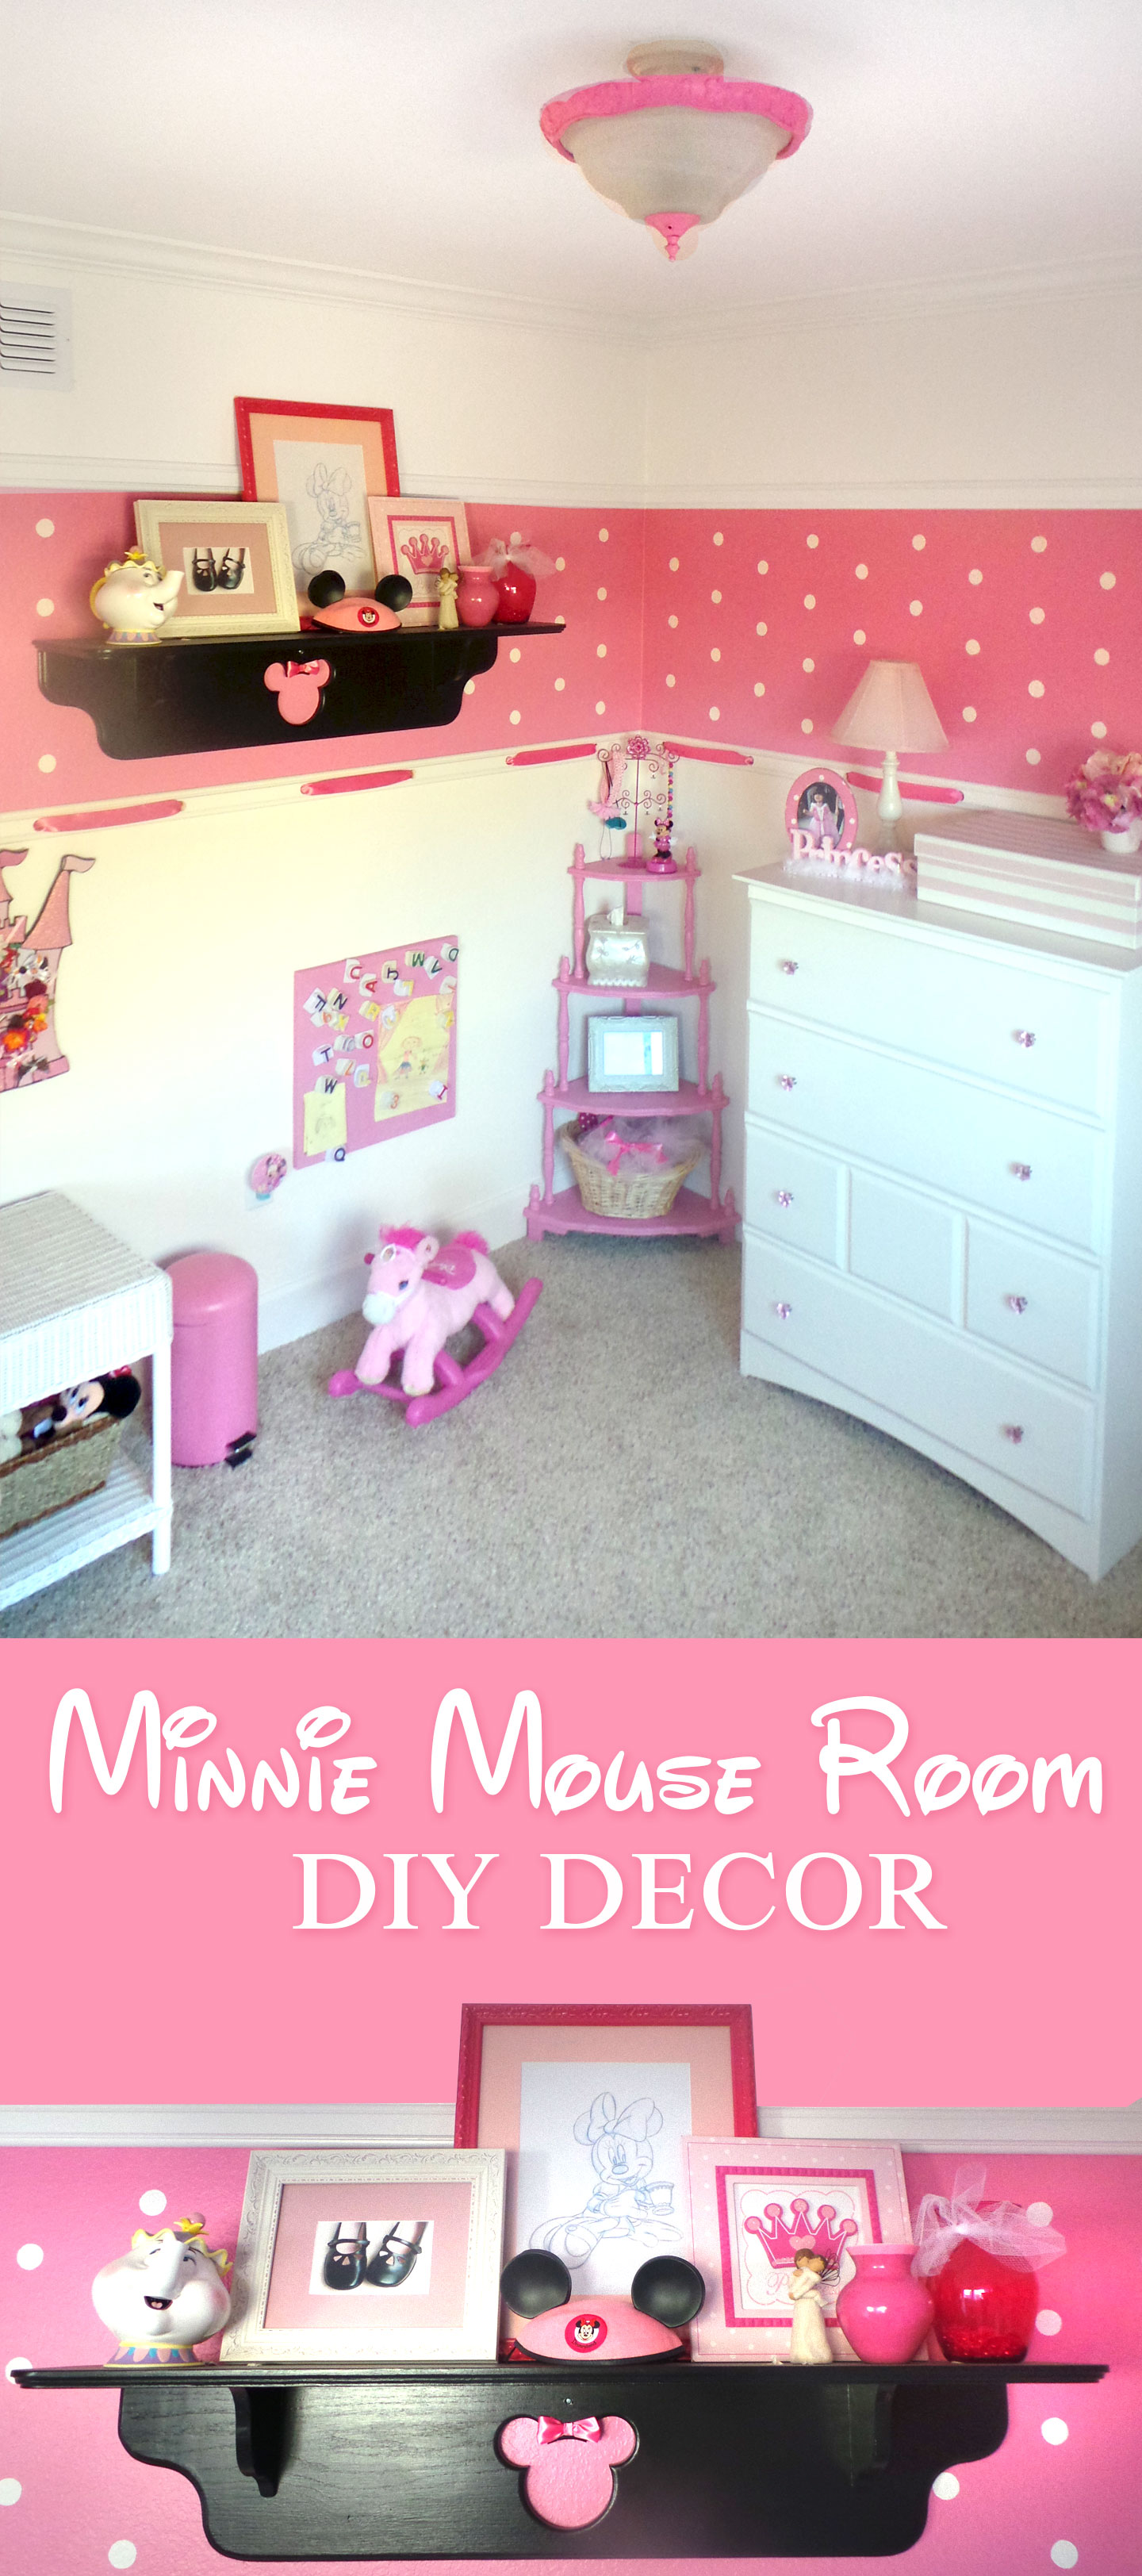 Minnie Mouse Room : DIY Decor - Highlights Along the Way